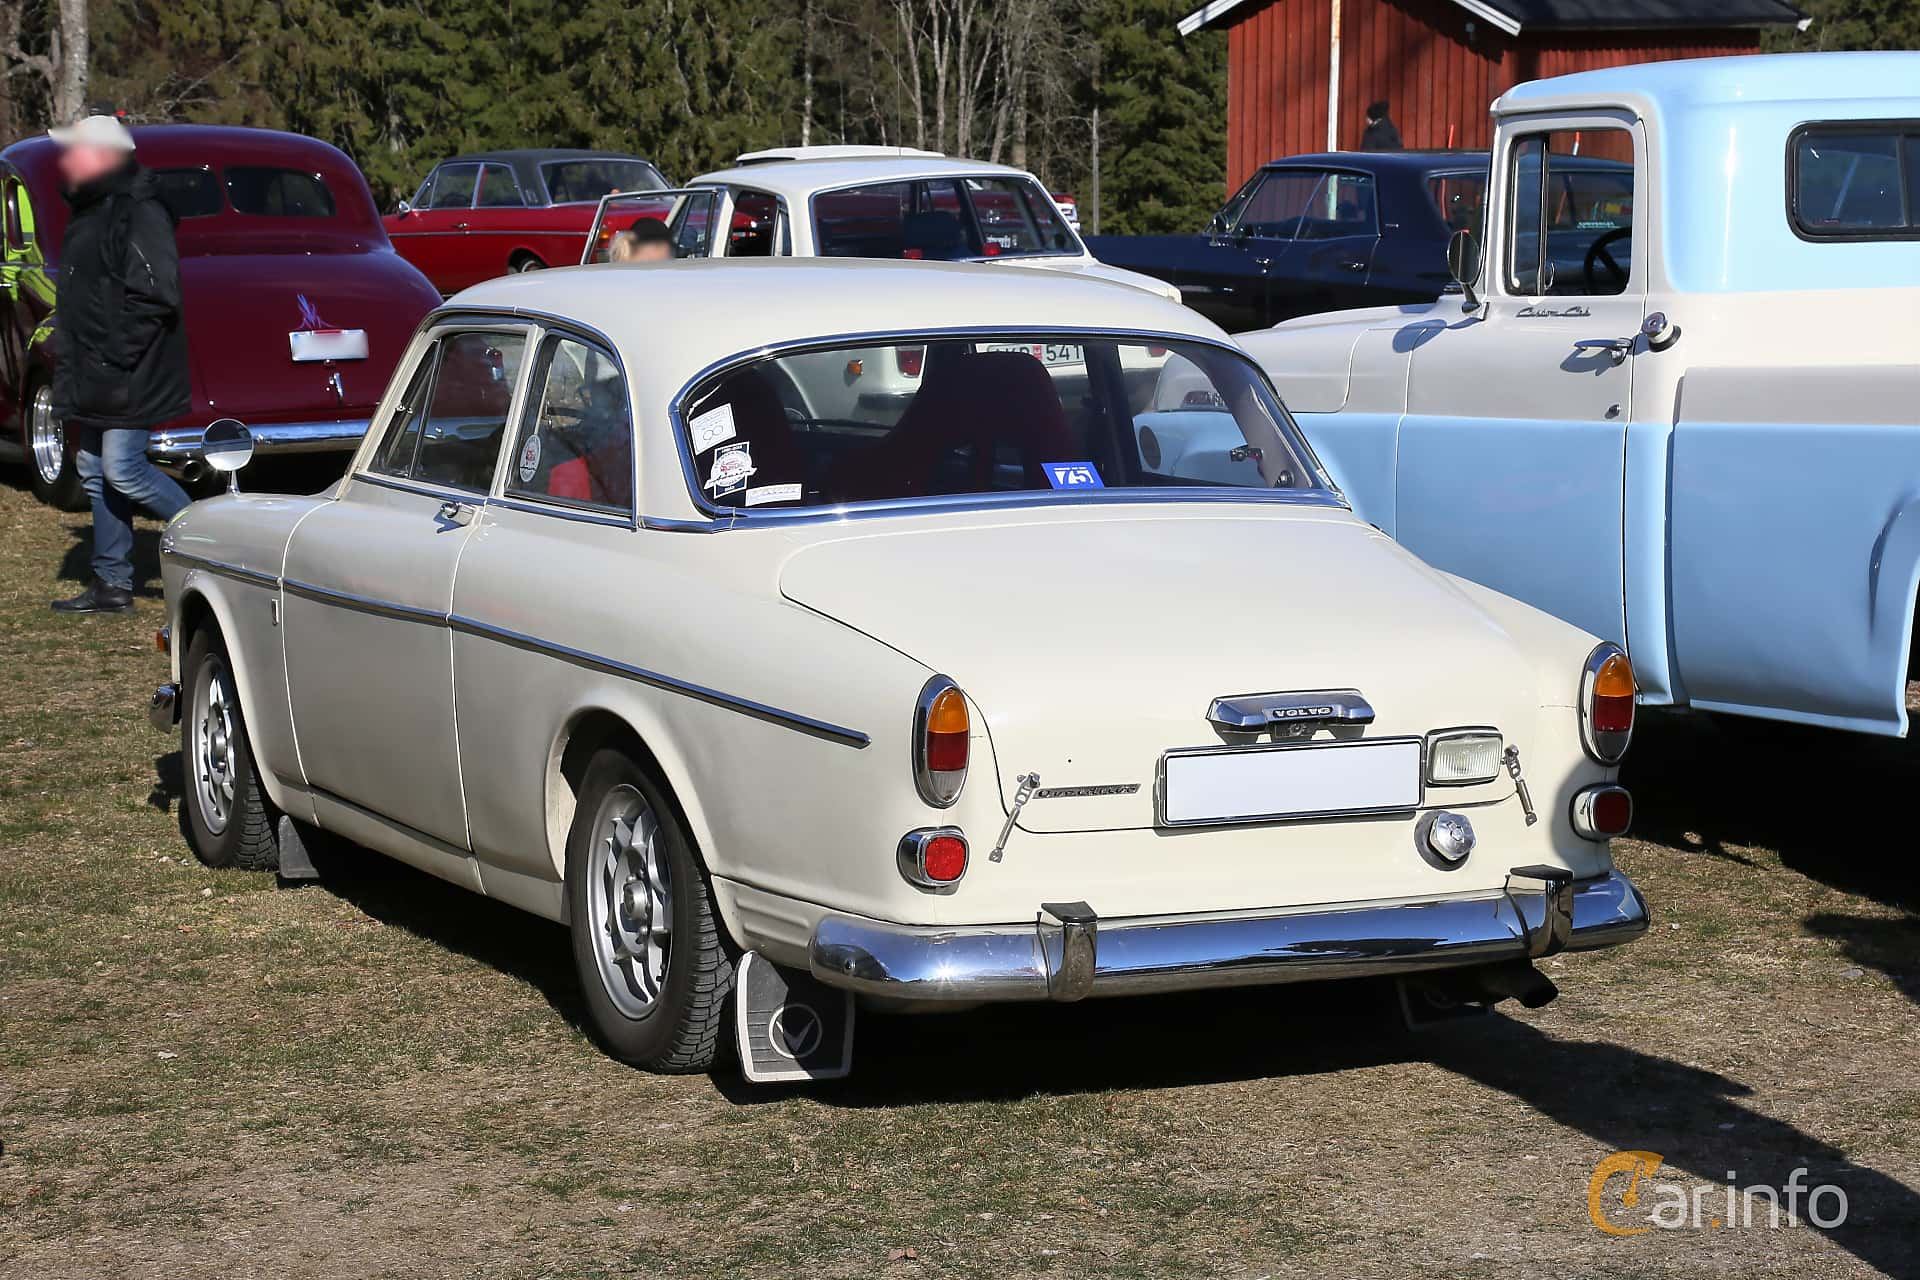 Volvo Amazon 121 P130 1.8 Manual, 75hp, 1968 at Uddevalla Veteranbilsmarknad Backamo, Ljungsk 2019